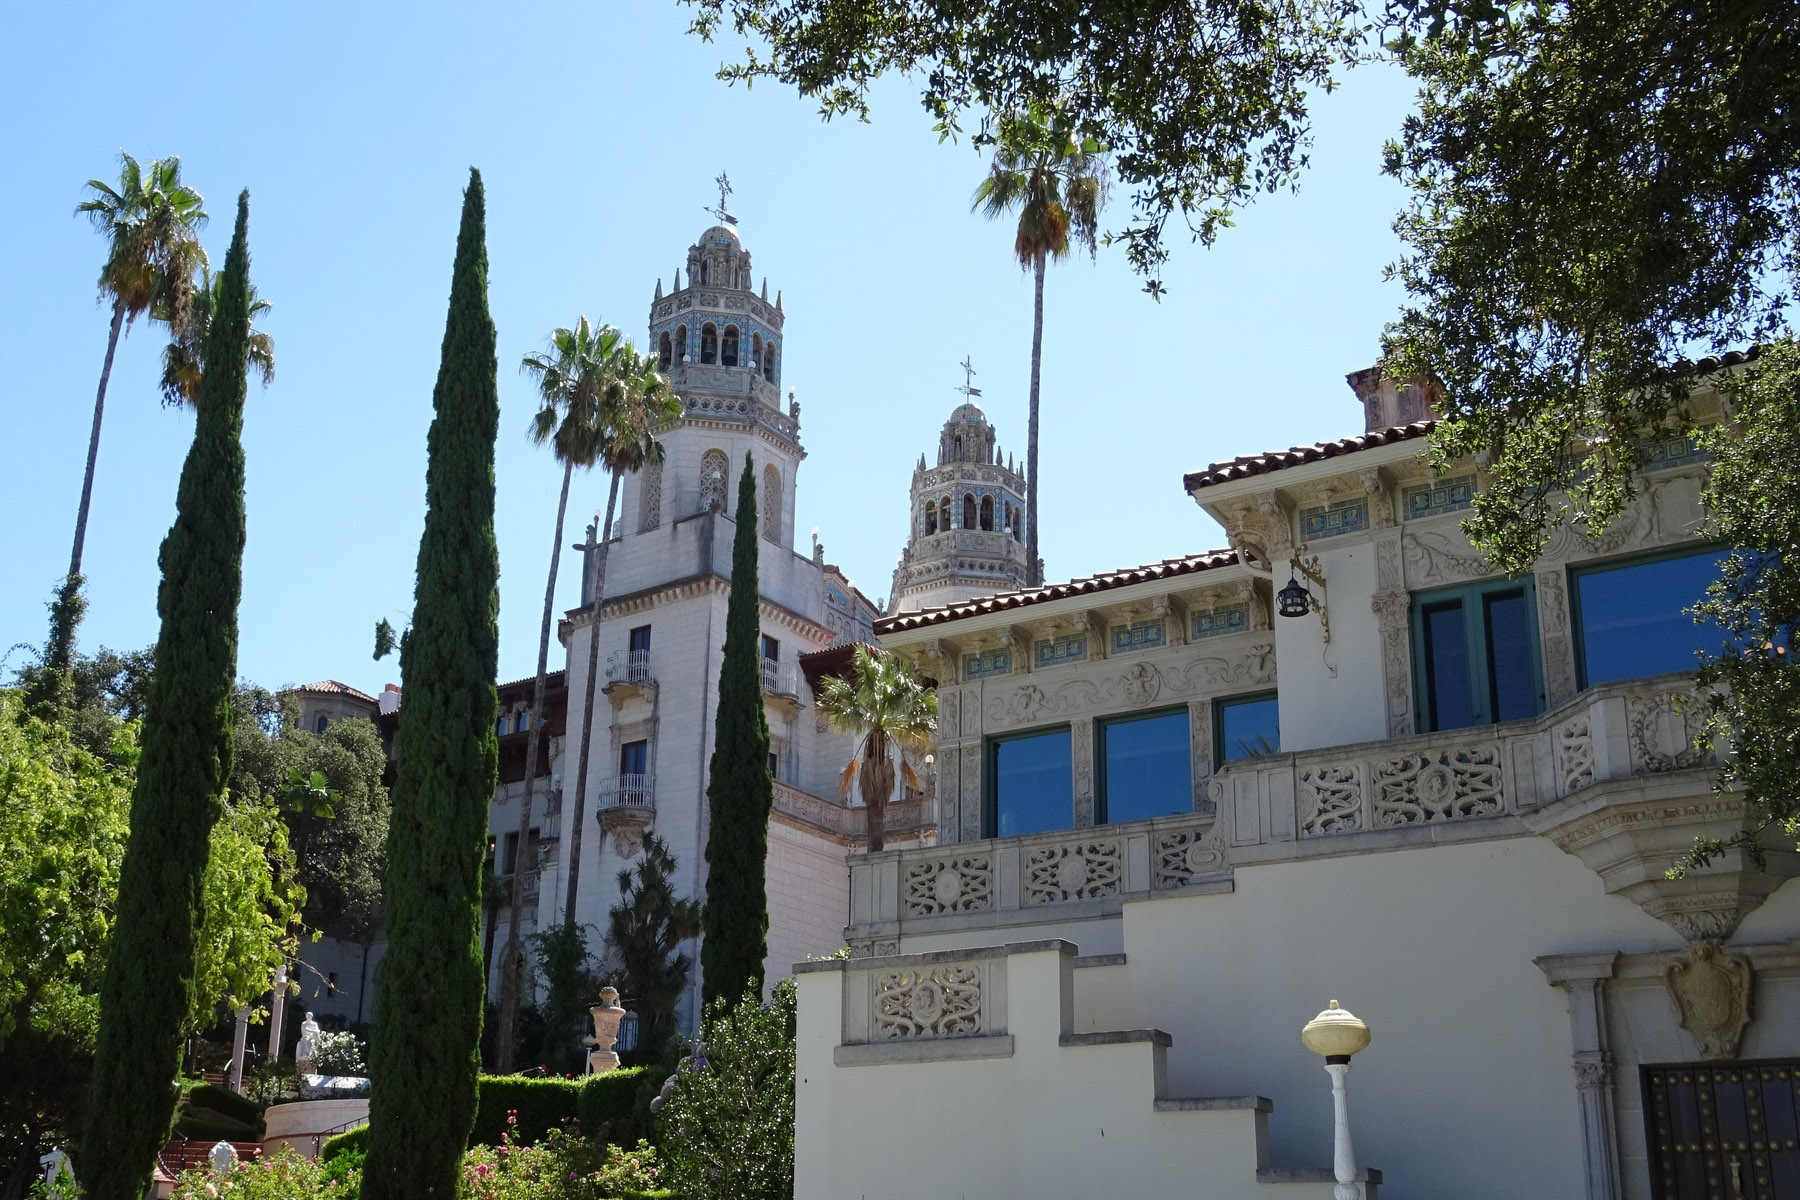 hearst-Devoyager-P-Hearst castle